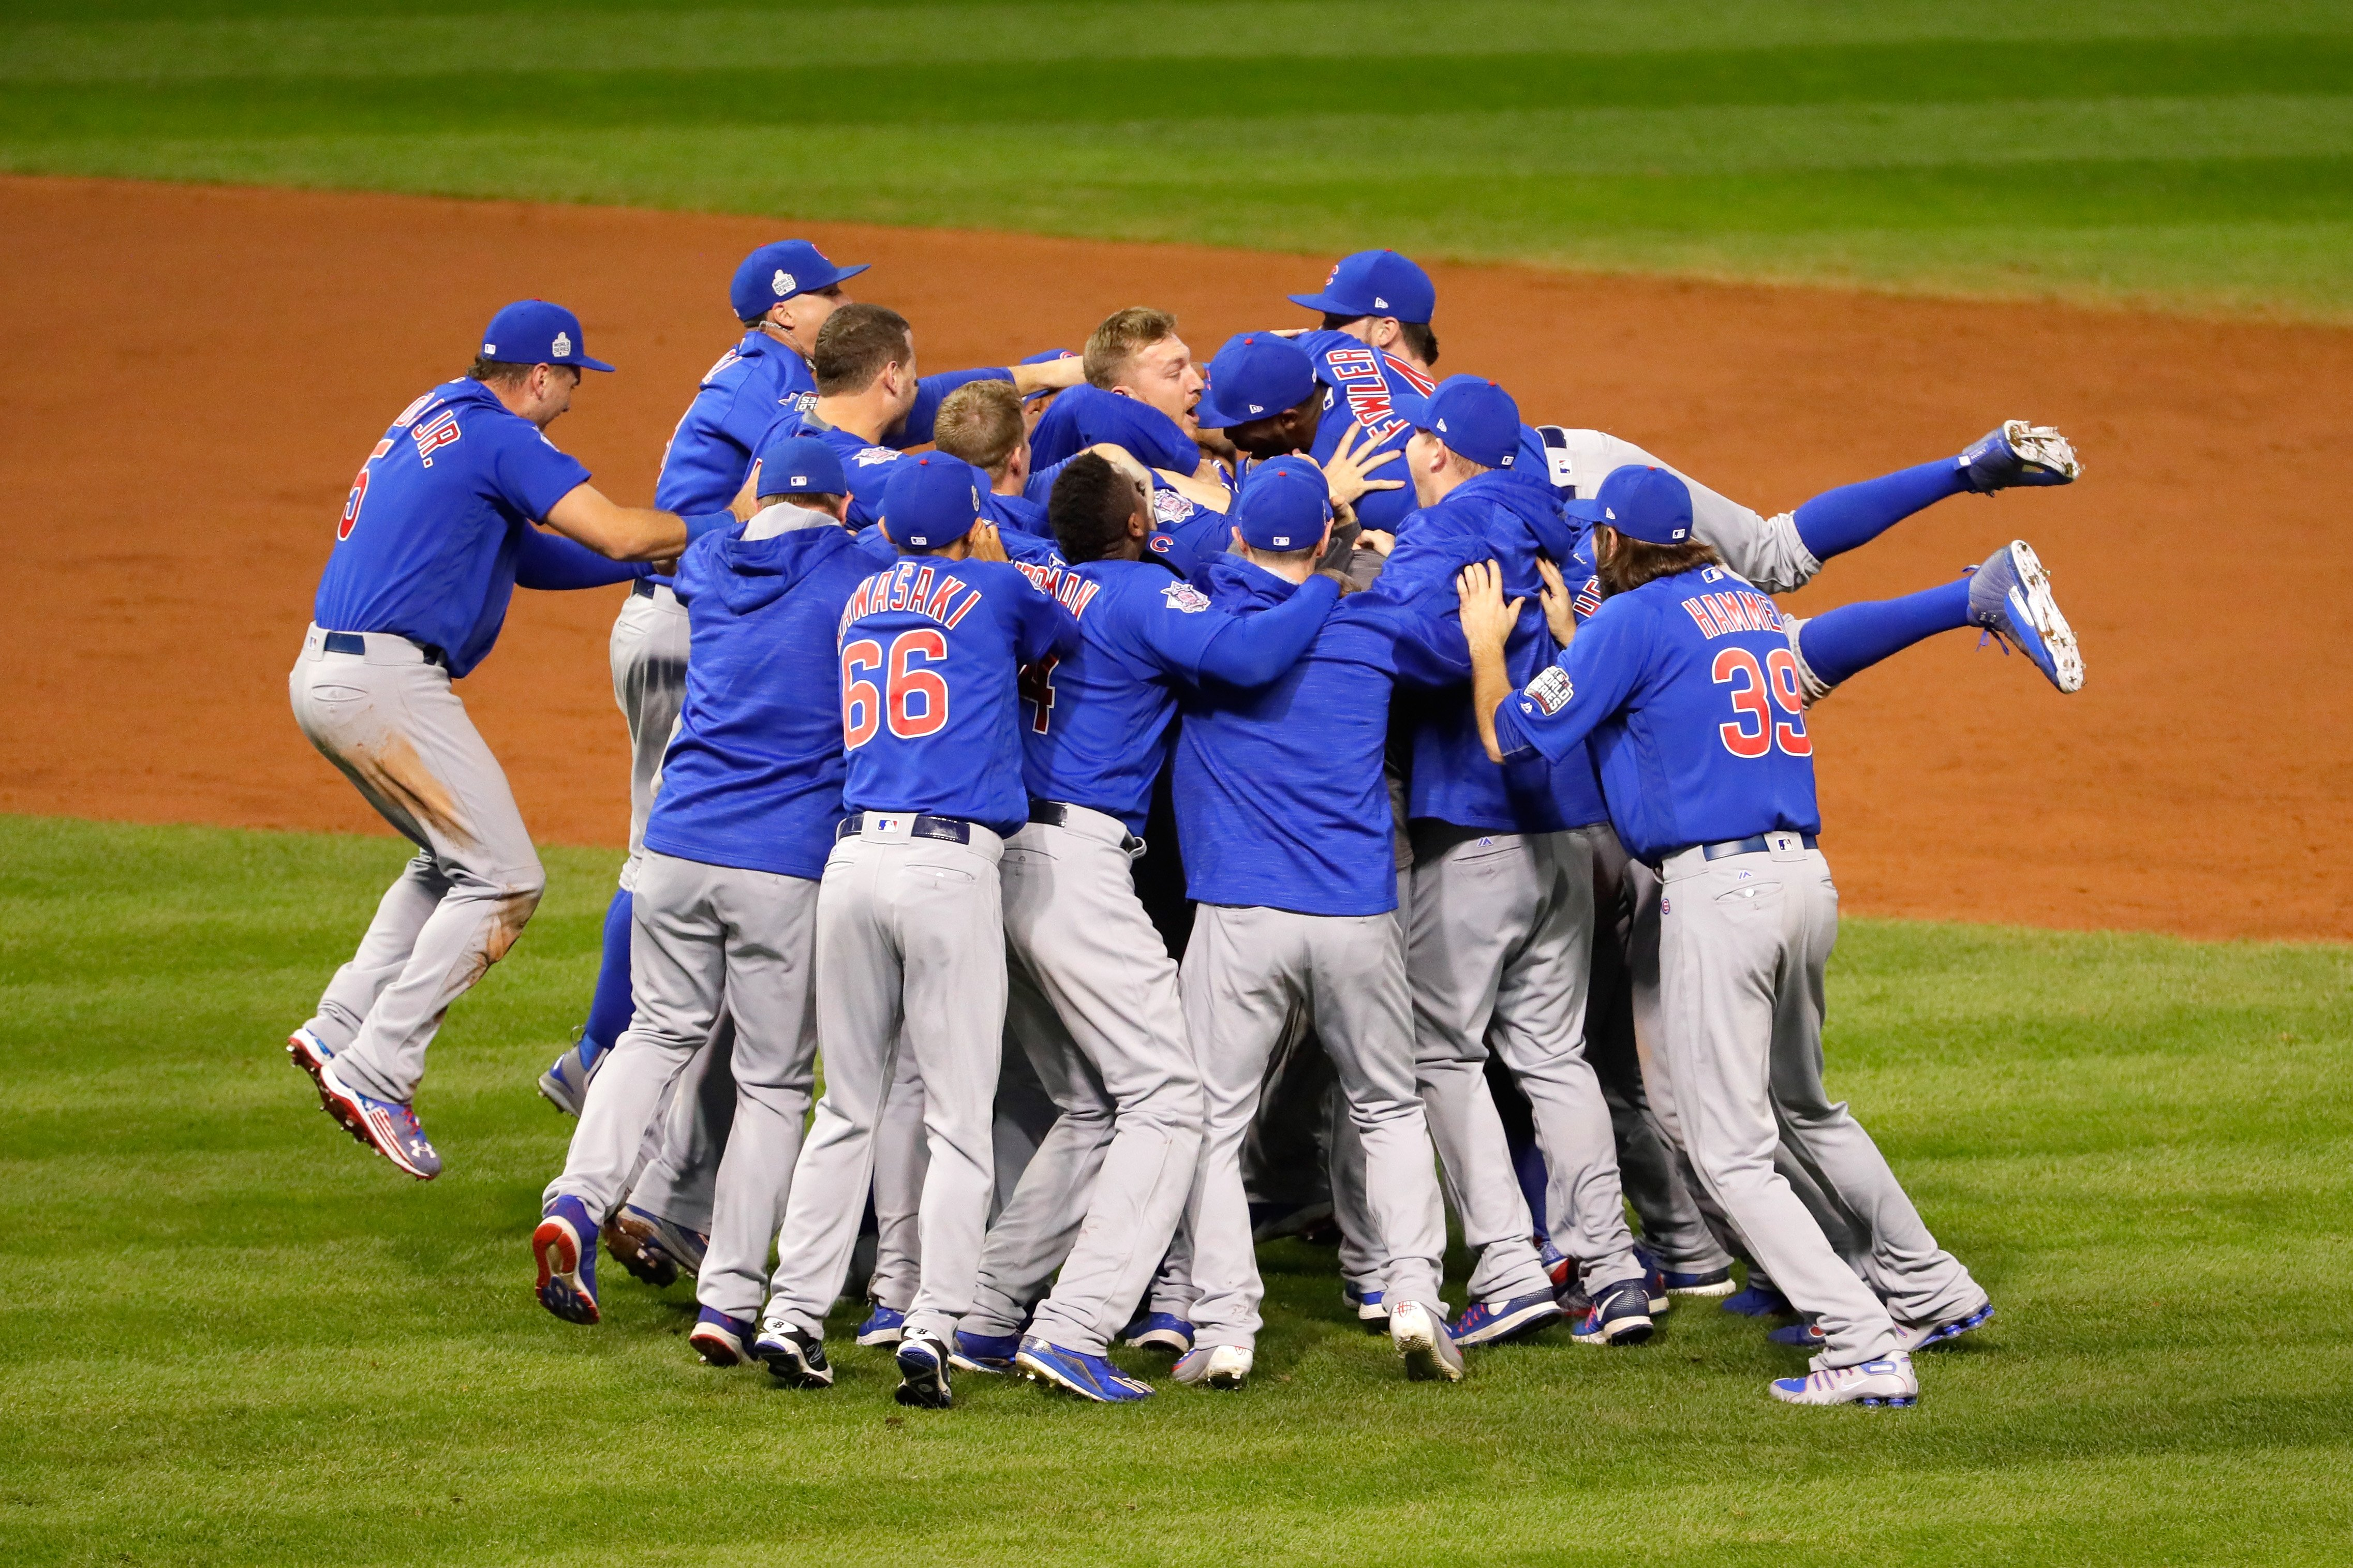 The Chicago Cubs celebrate after defeating the Cleveland Indians  8-7 in Game 7 to win baseball's 2016 World Series at Progressive Field on Nov. 2, 2016 in Cleveland.